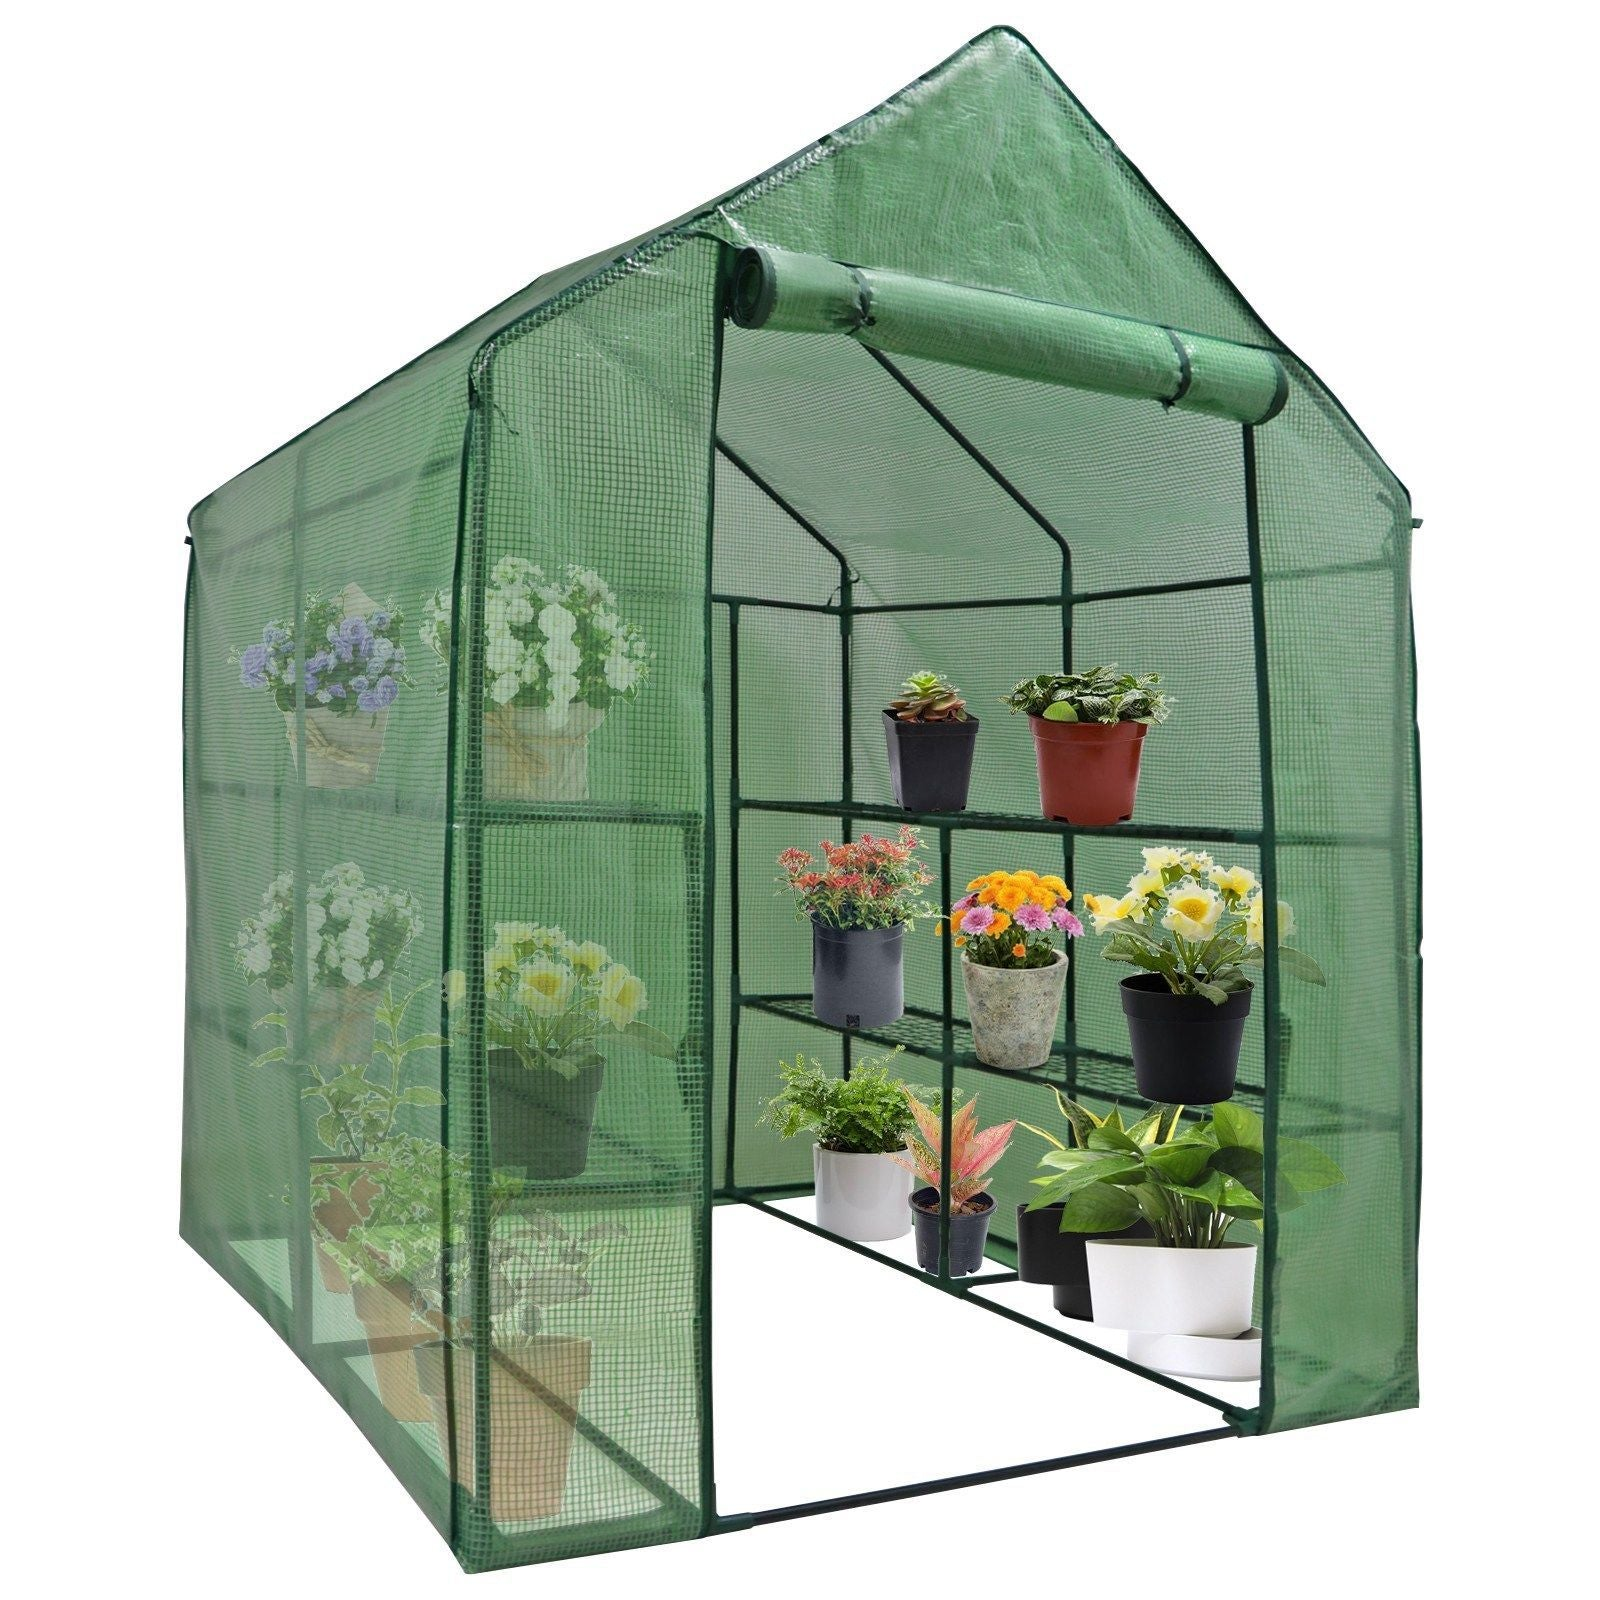 Reliable Technologies Large Walk-in Plant Greenhouse